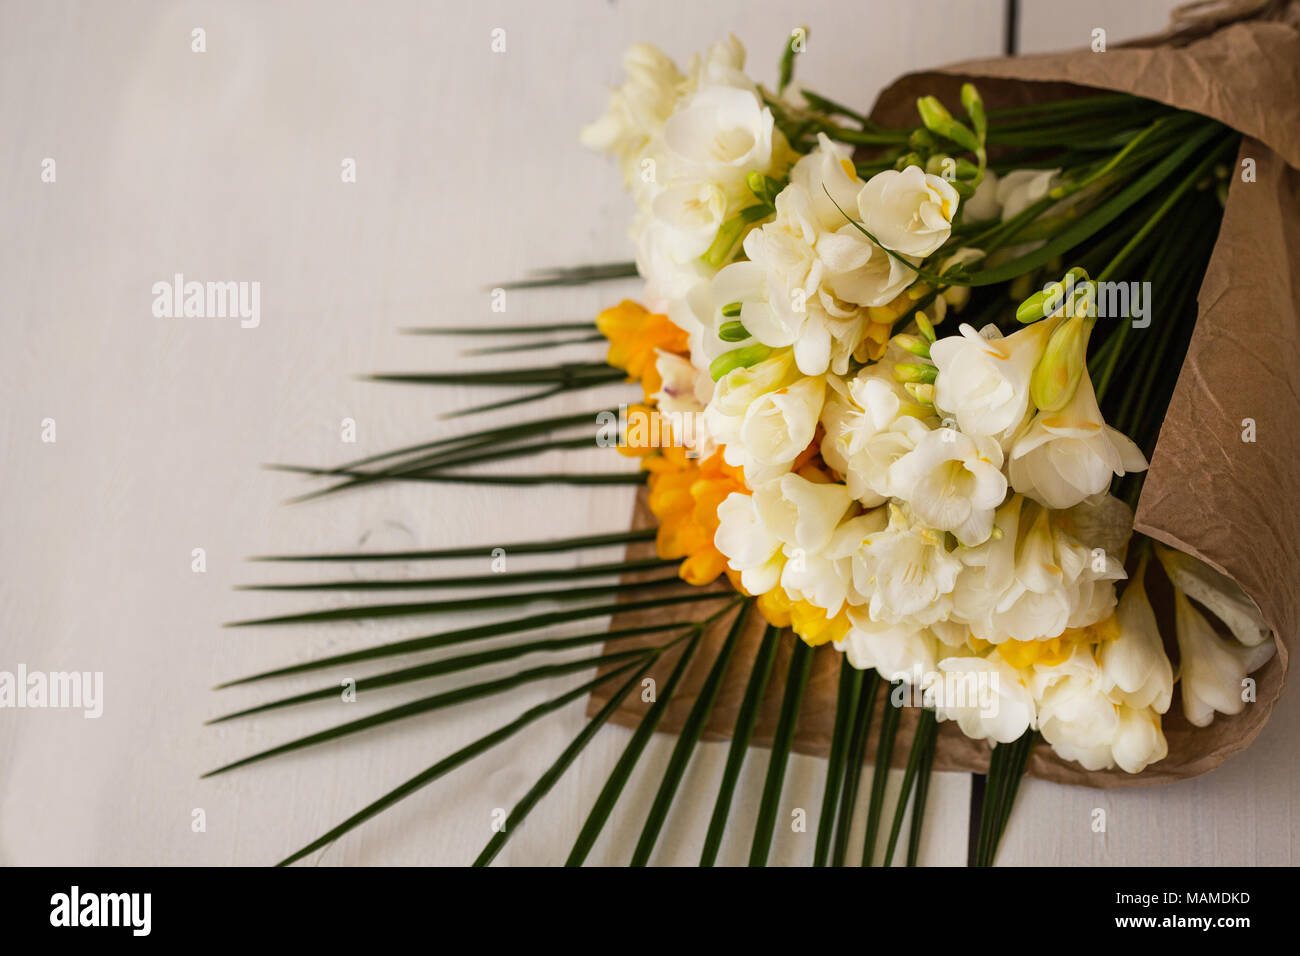 Bouquet of white and yellow freesia flower wrapped in craft paper bouquet of white and yellow freesia flower wrapped in craft paper laying on white tabletop copy space izmirmasajfo